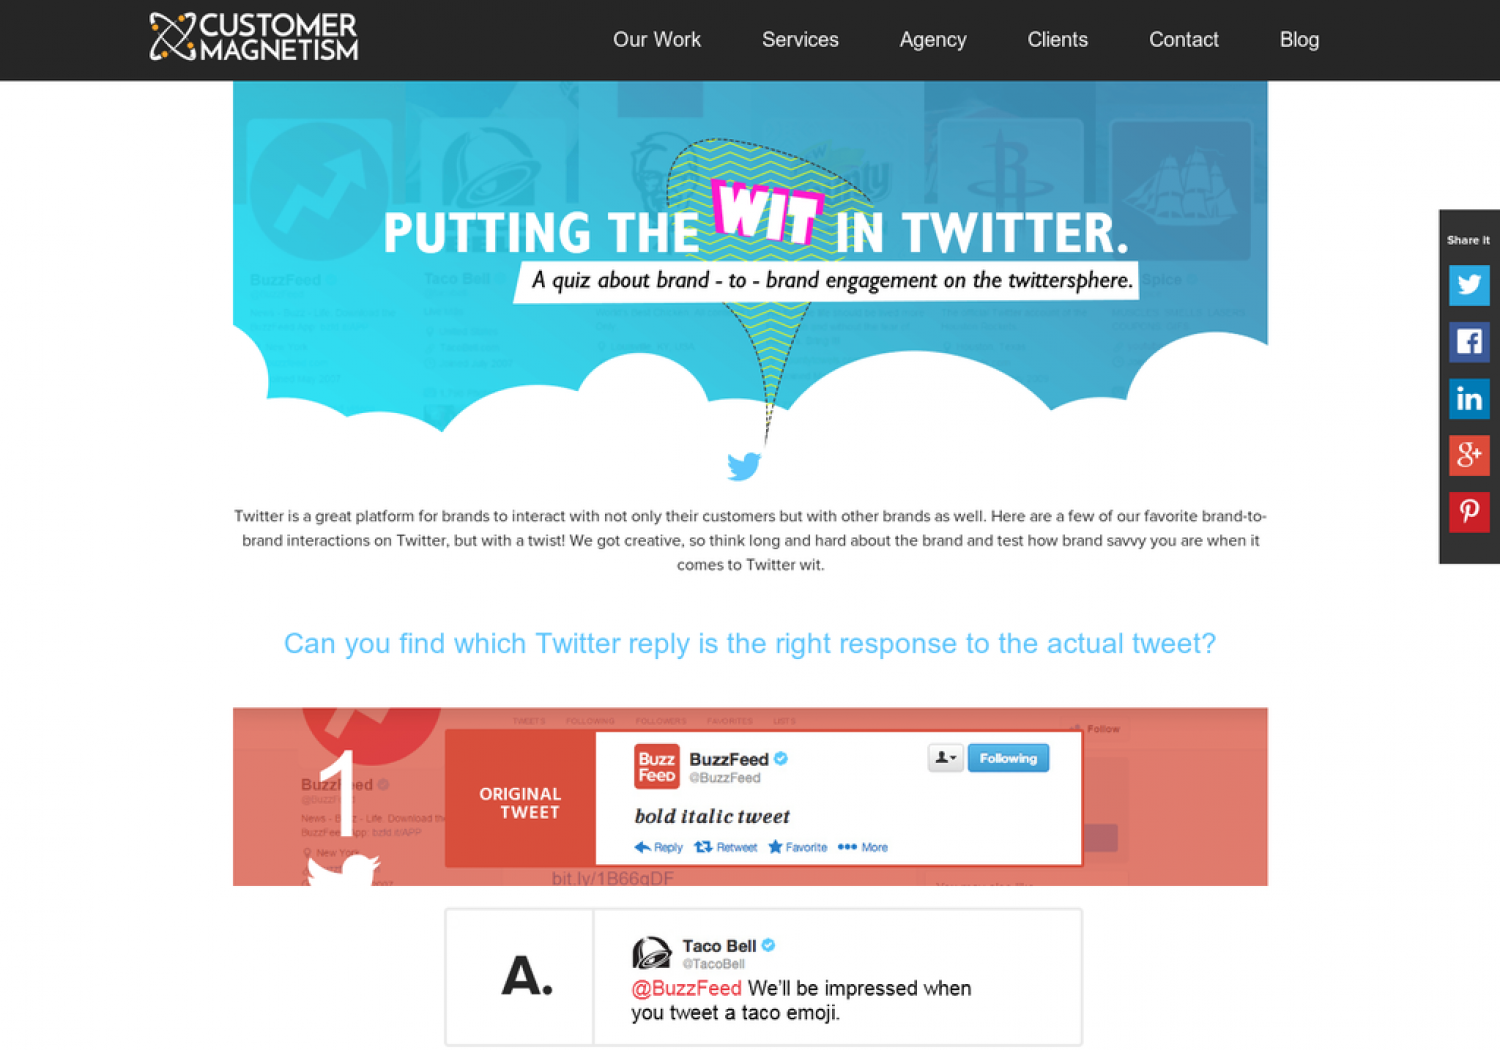 Putting The Wit In Twitter - Quiz Infographic